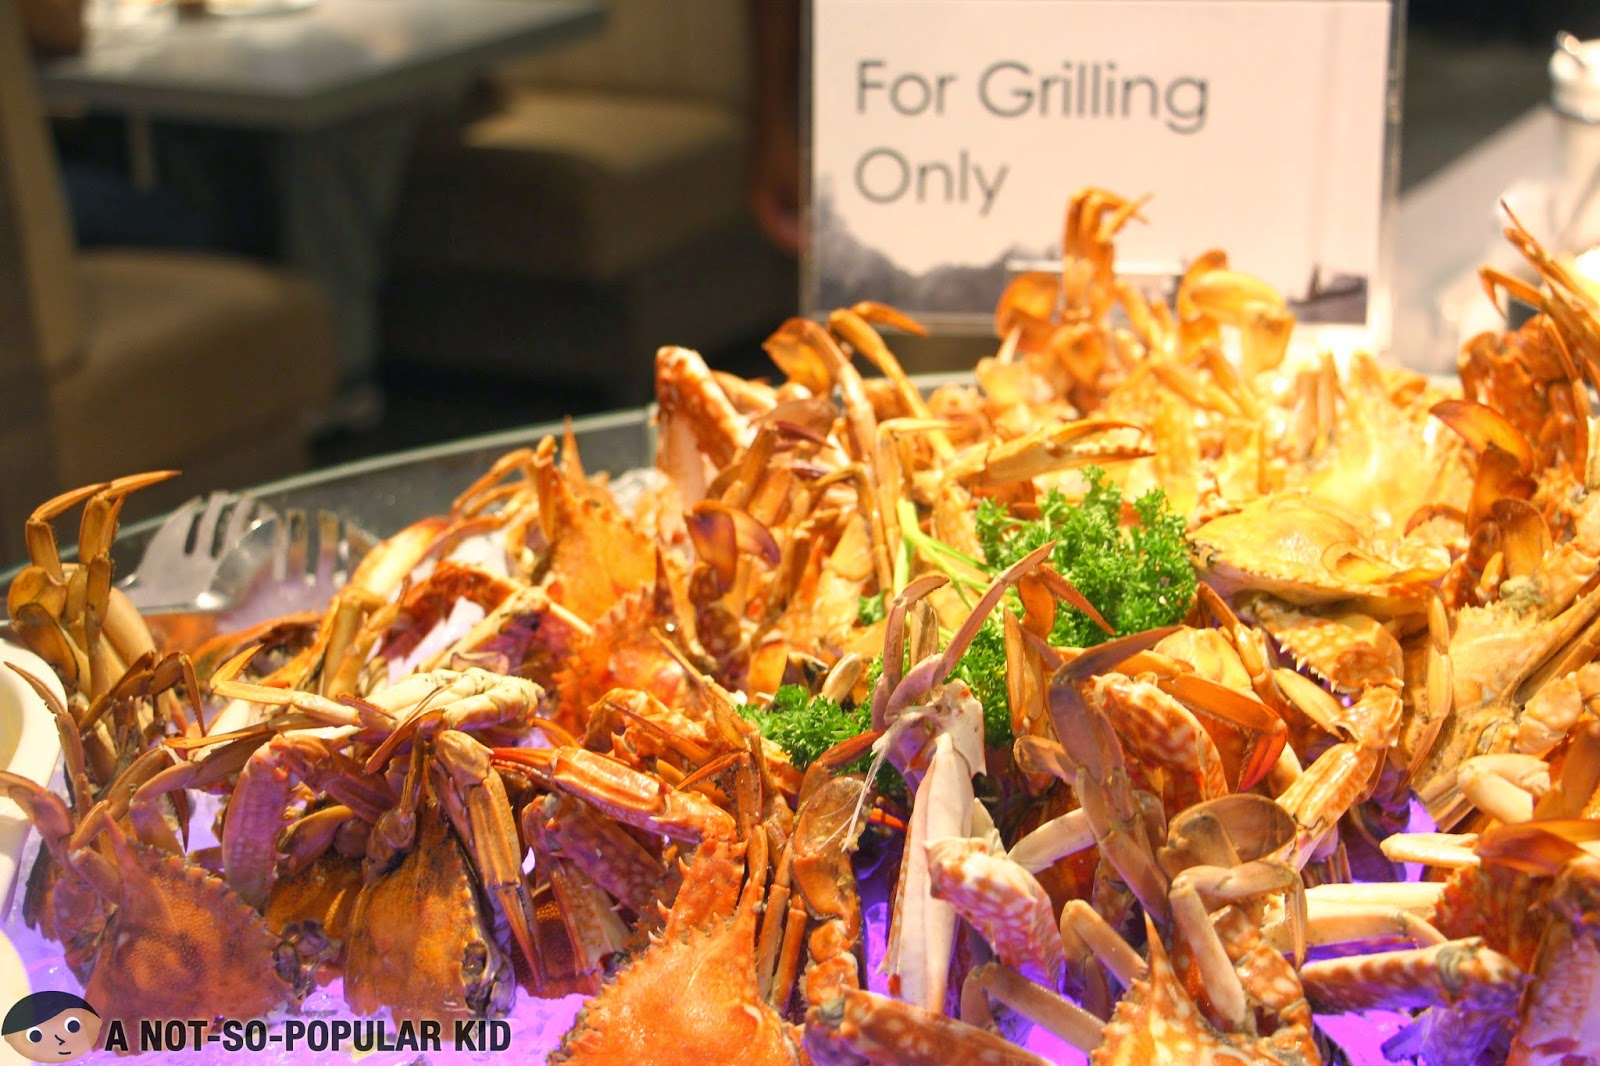 Crabs for Grilling in Vikings SM Megamall